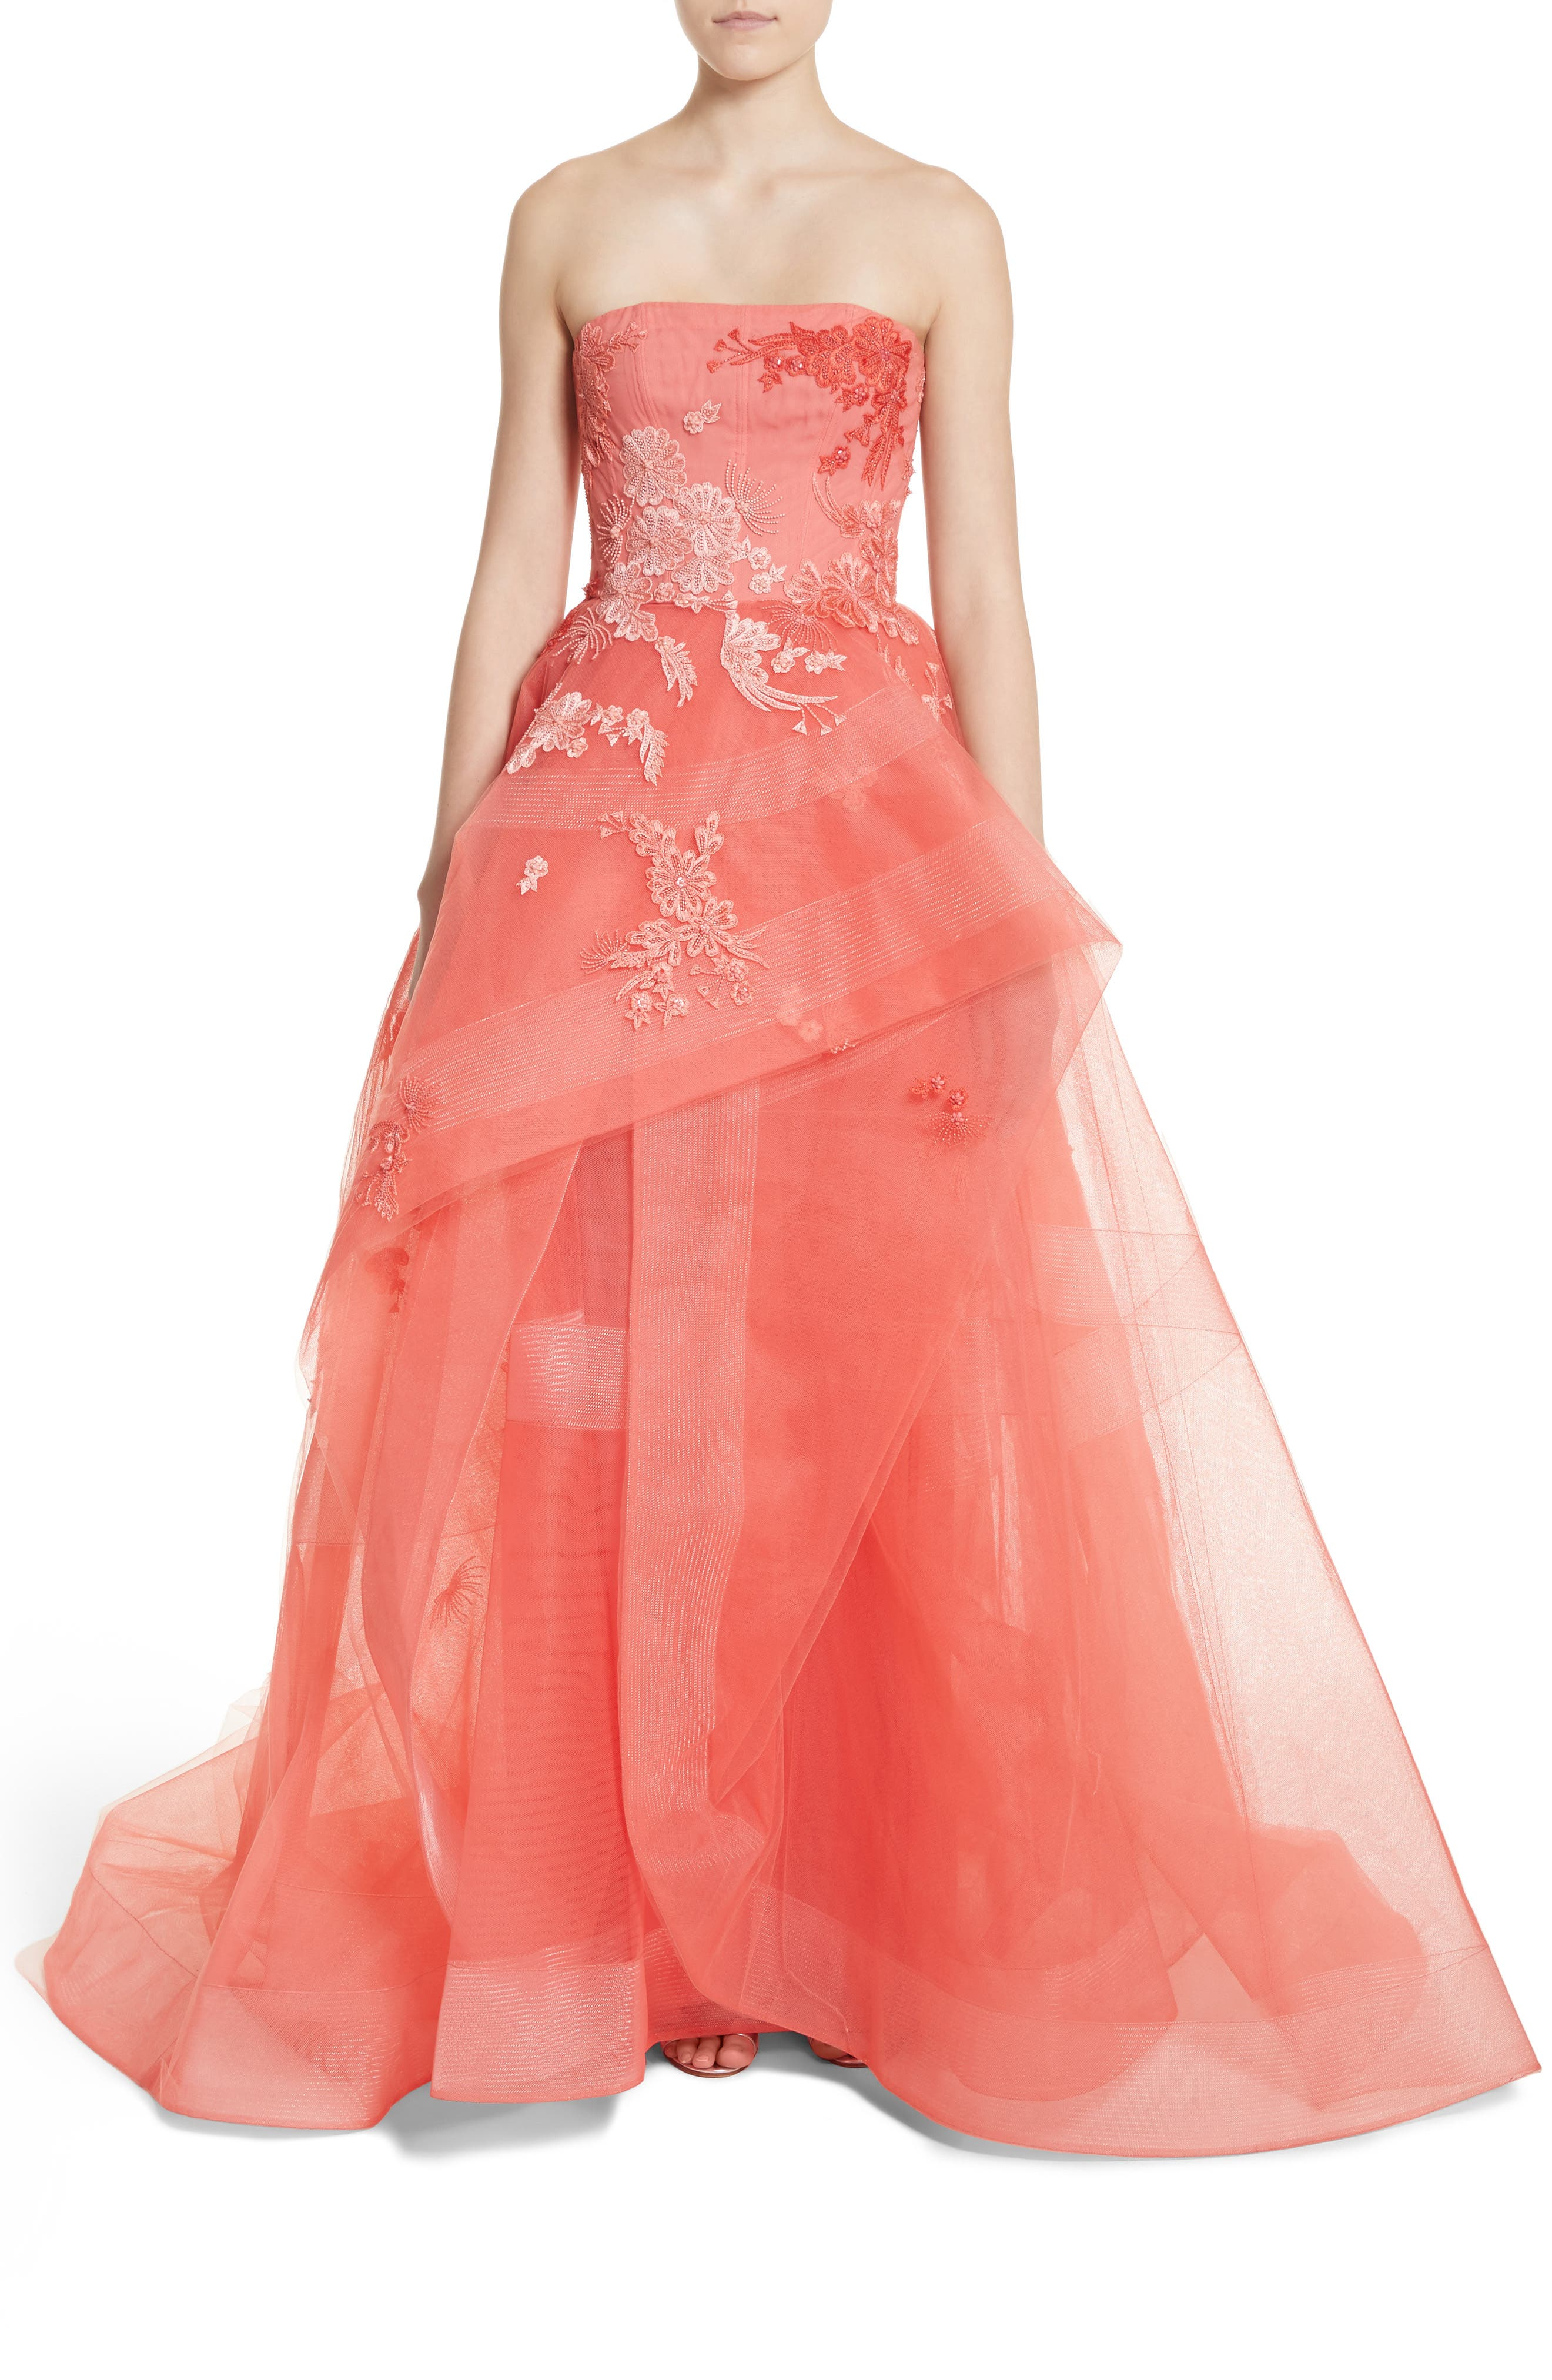 Monique Lhuillier Embroidered Strapless Ballgown